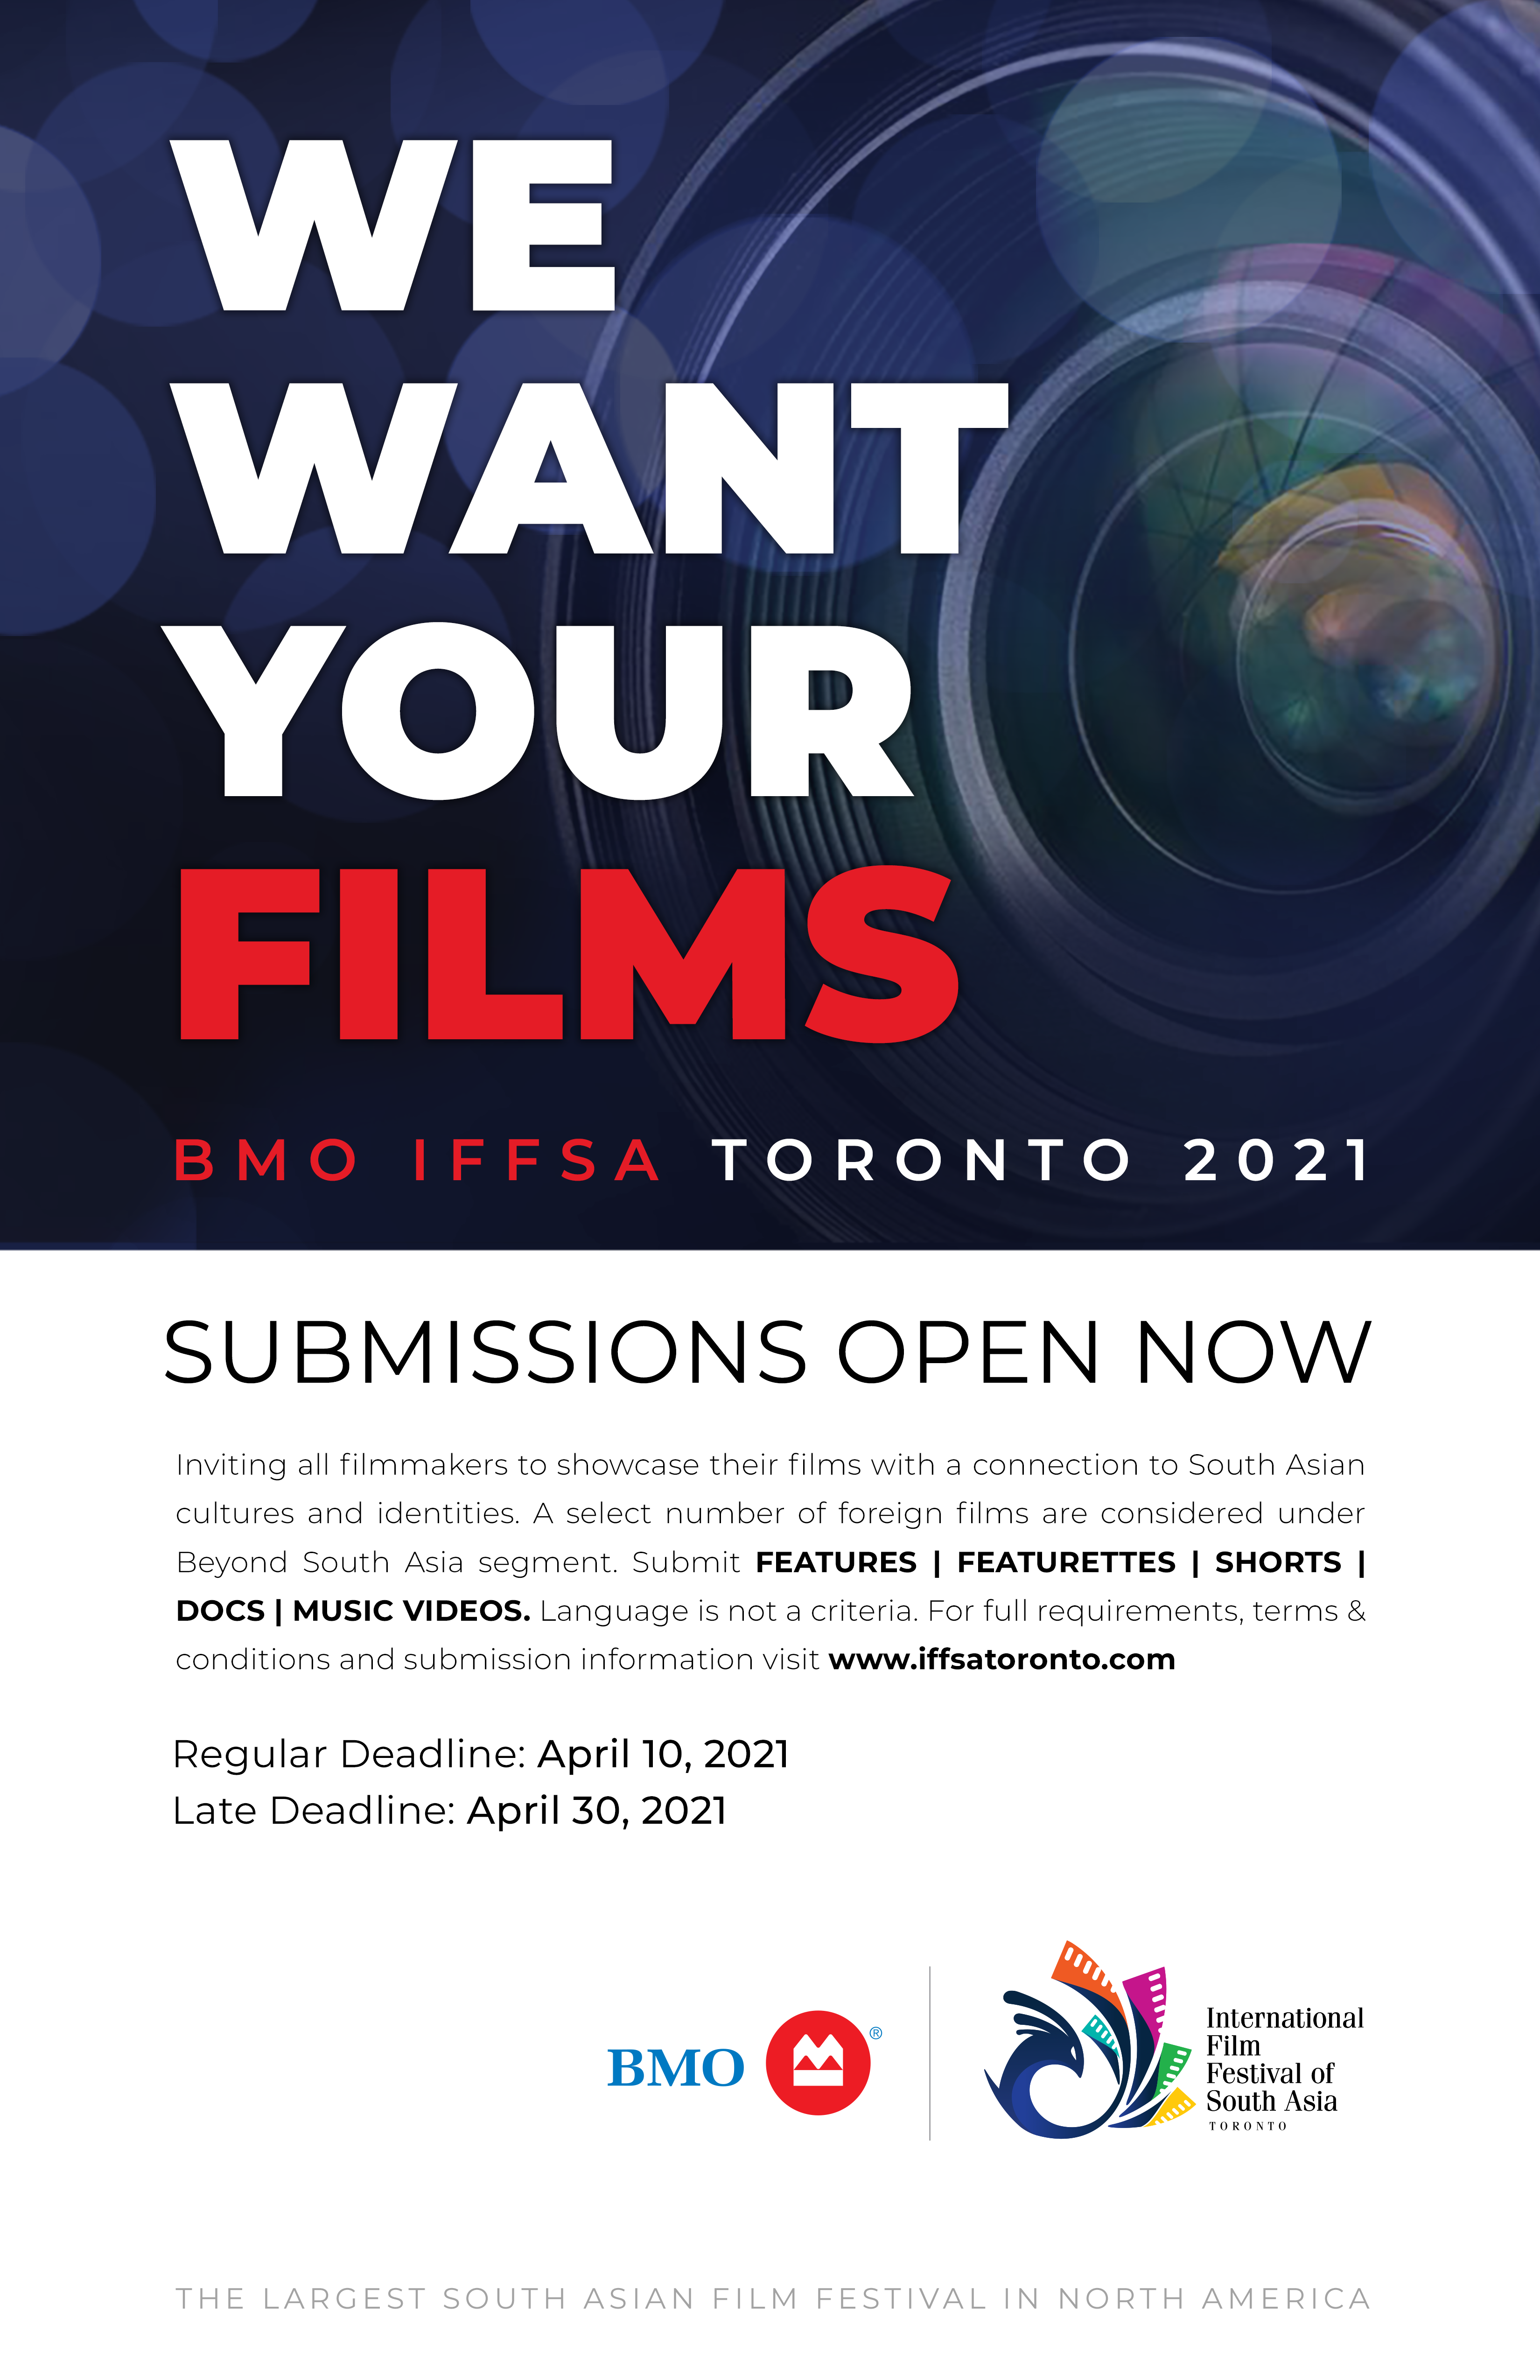 2021 FILM SUBMISSIONS